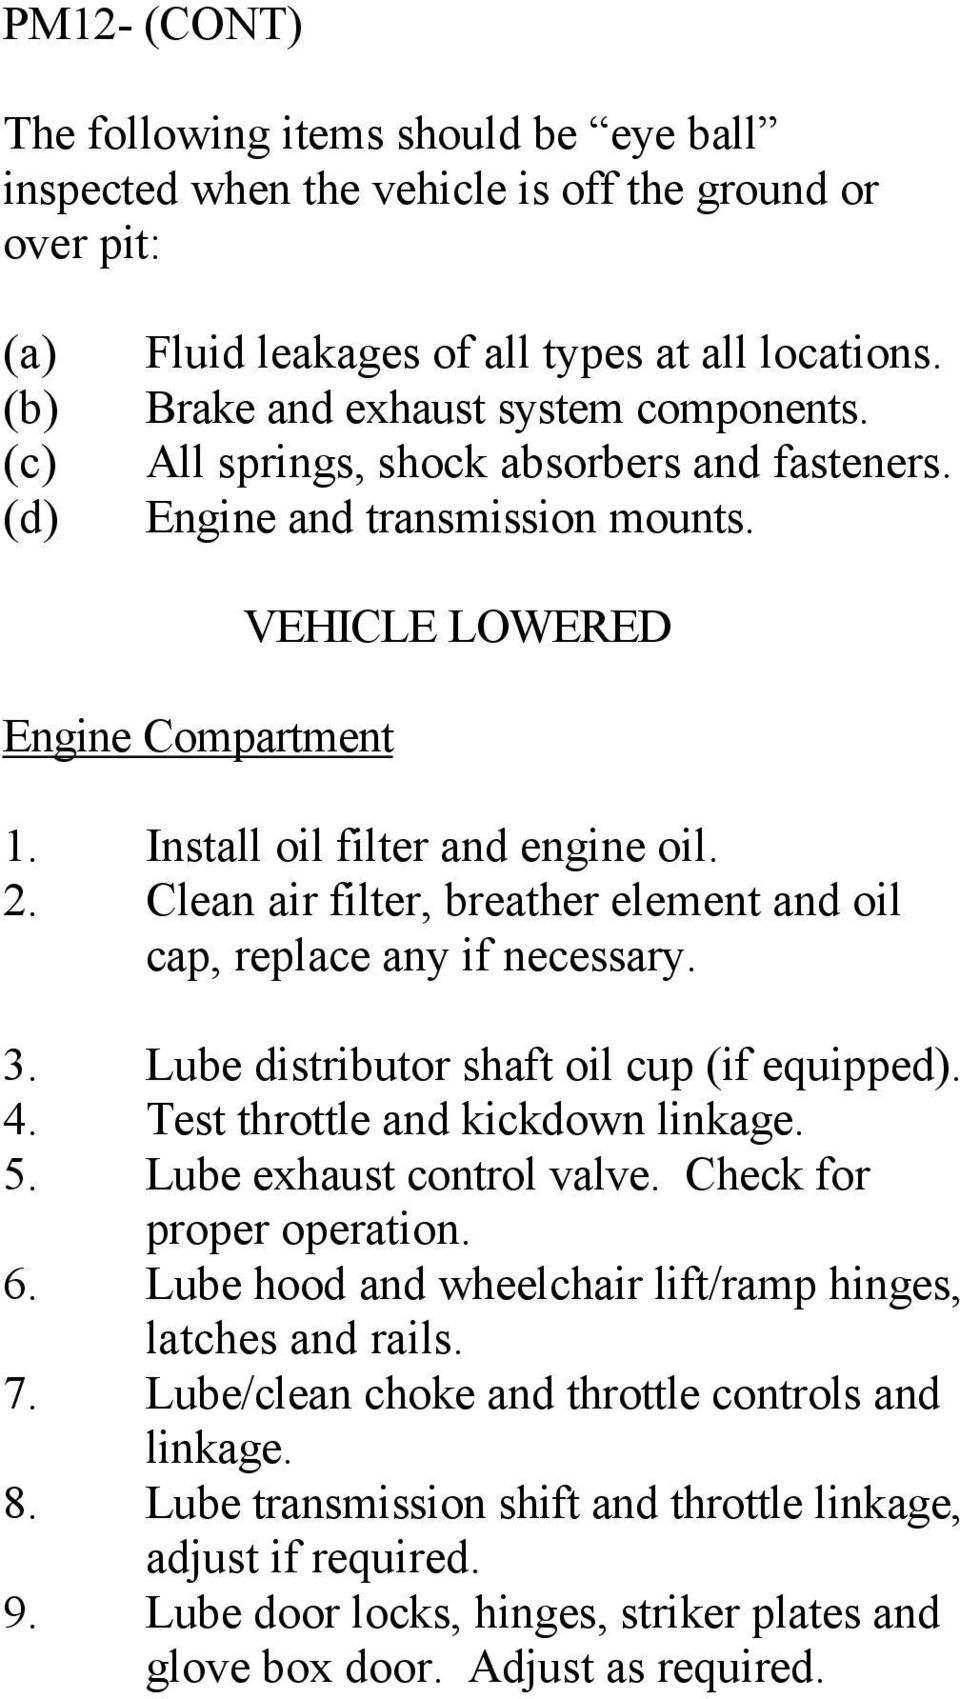 Clean air filter, breather element and oil cap, replace any if necessary. 3. Lube distributor shaft oil cup (if equipped). 4. Test throttle and kickdown linkage. 5. Lube exhaust control valve.